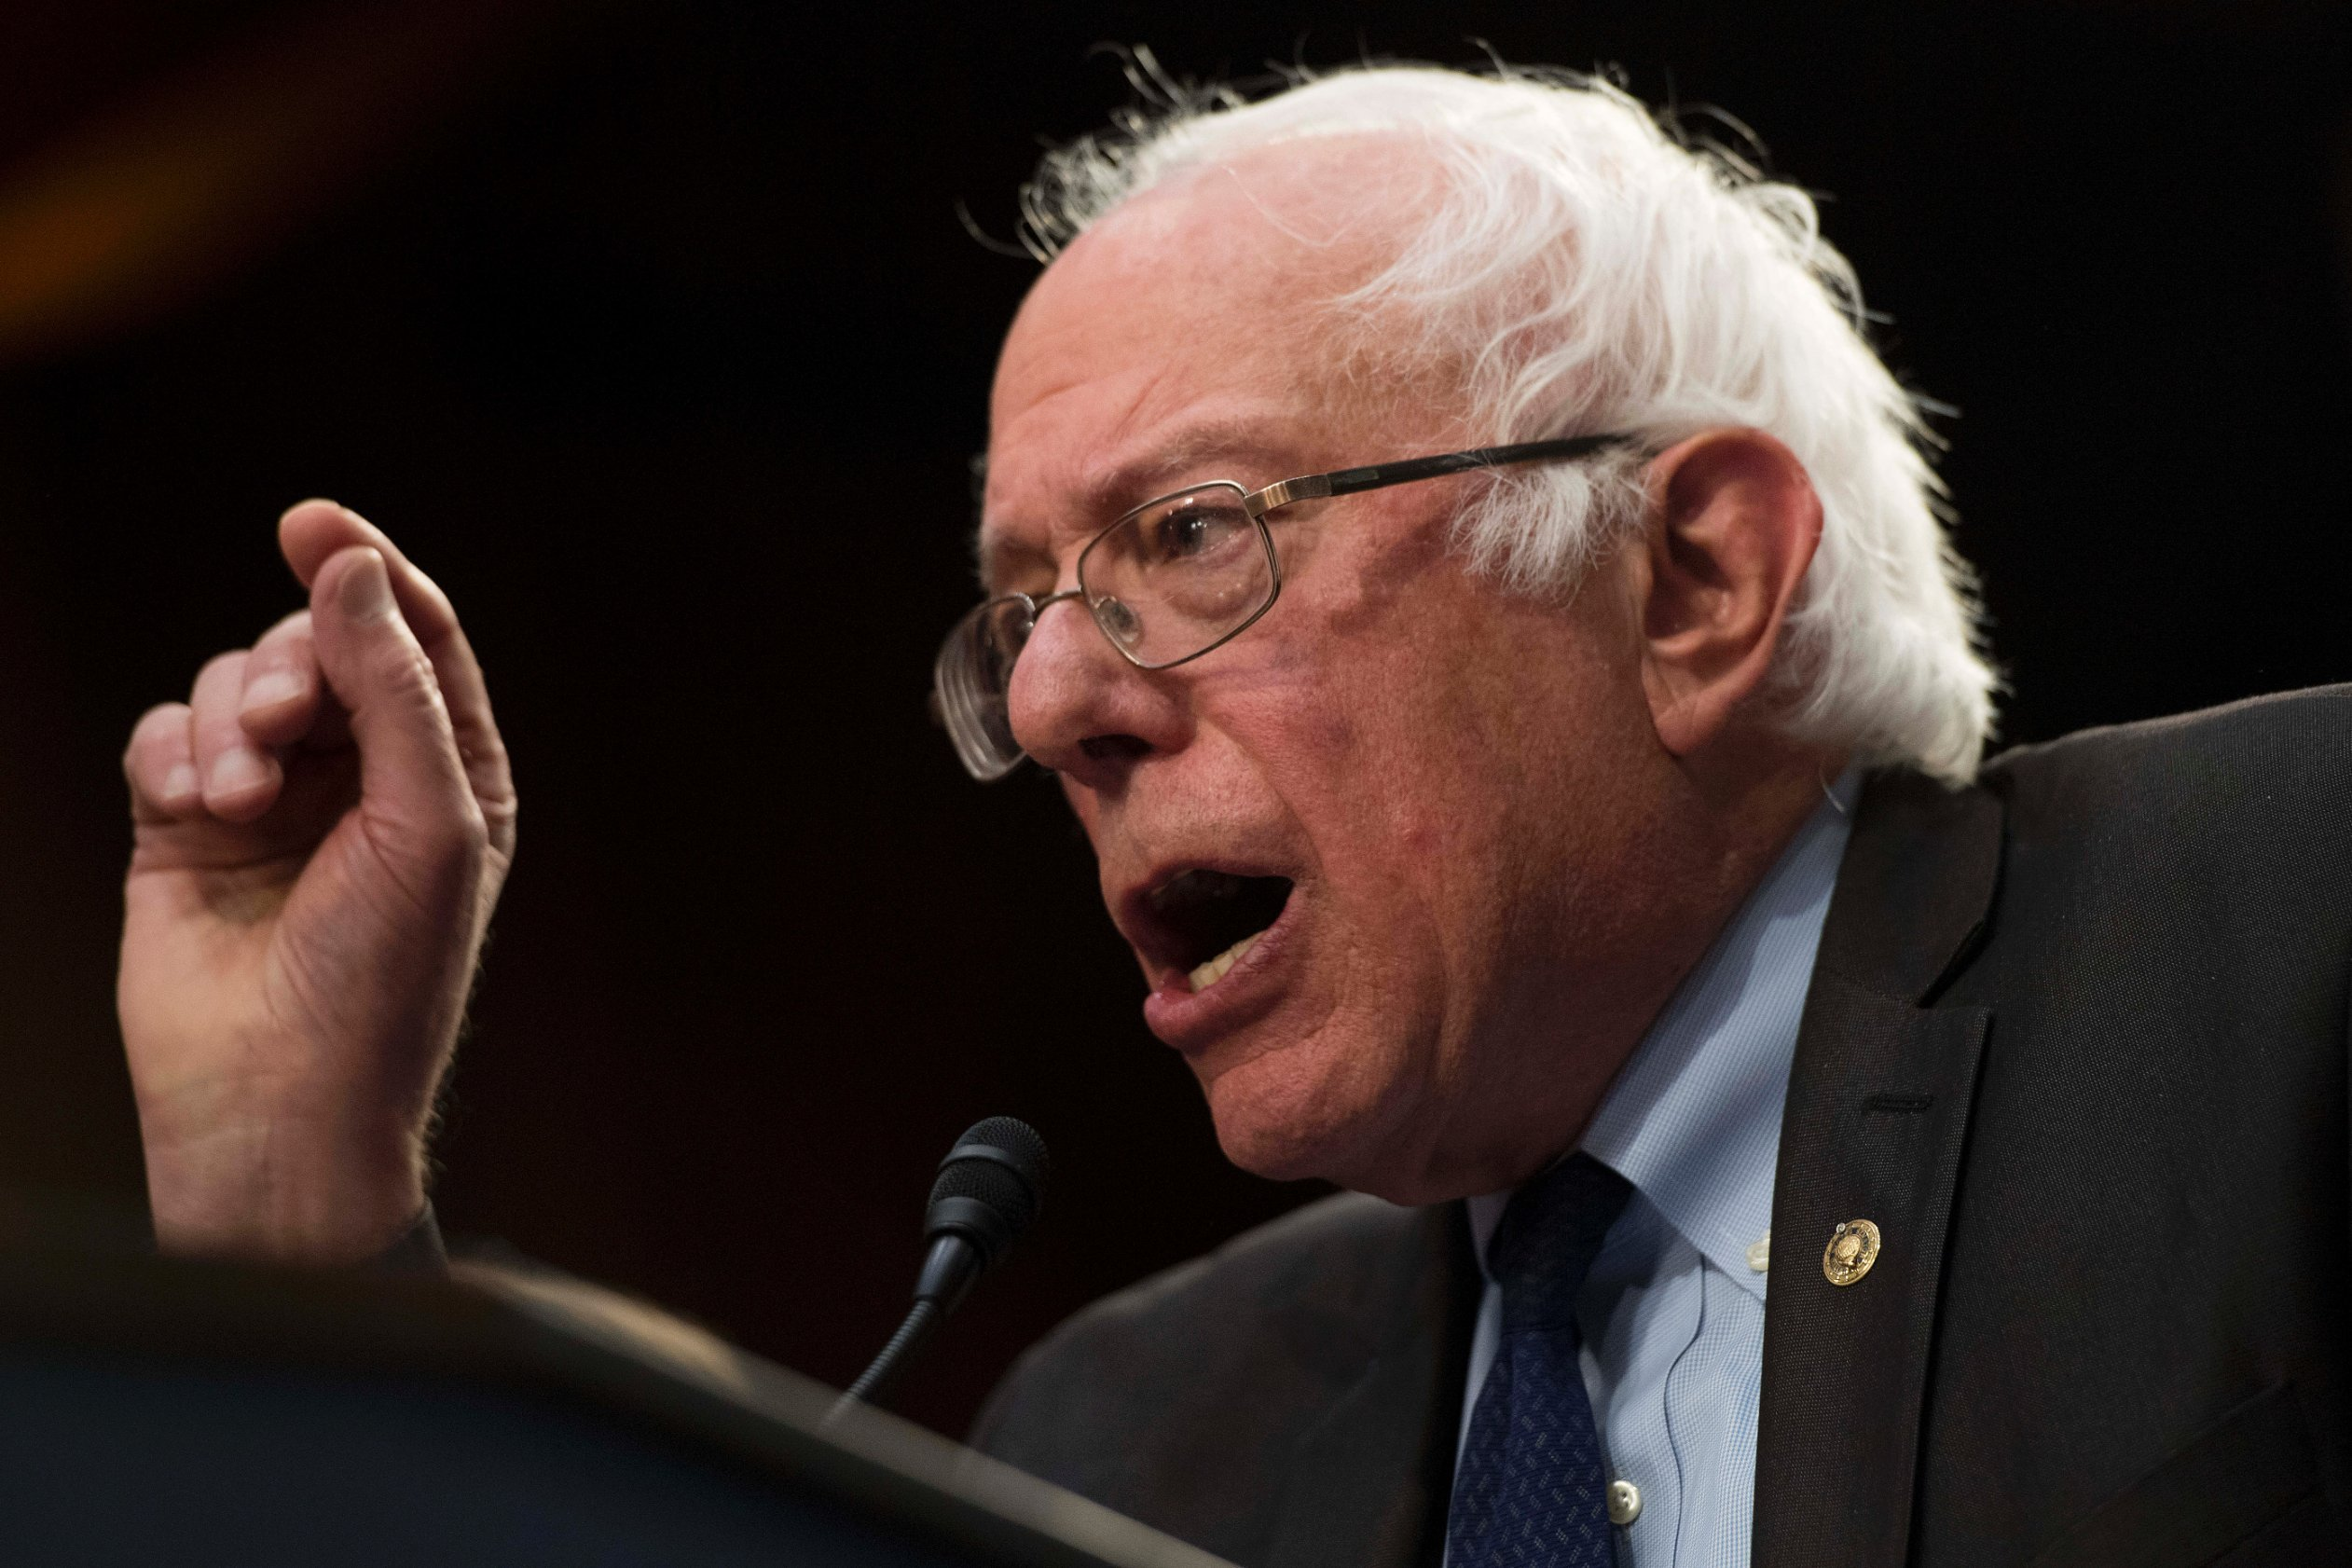 Bernie Sanders rolls out wealth tax plan that would help fund 'Medicare for All'